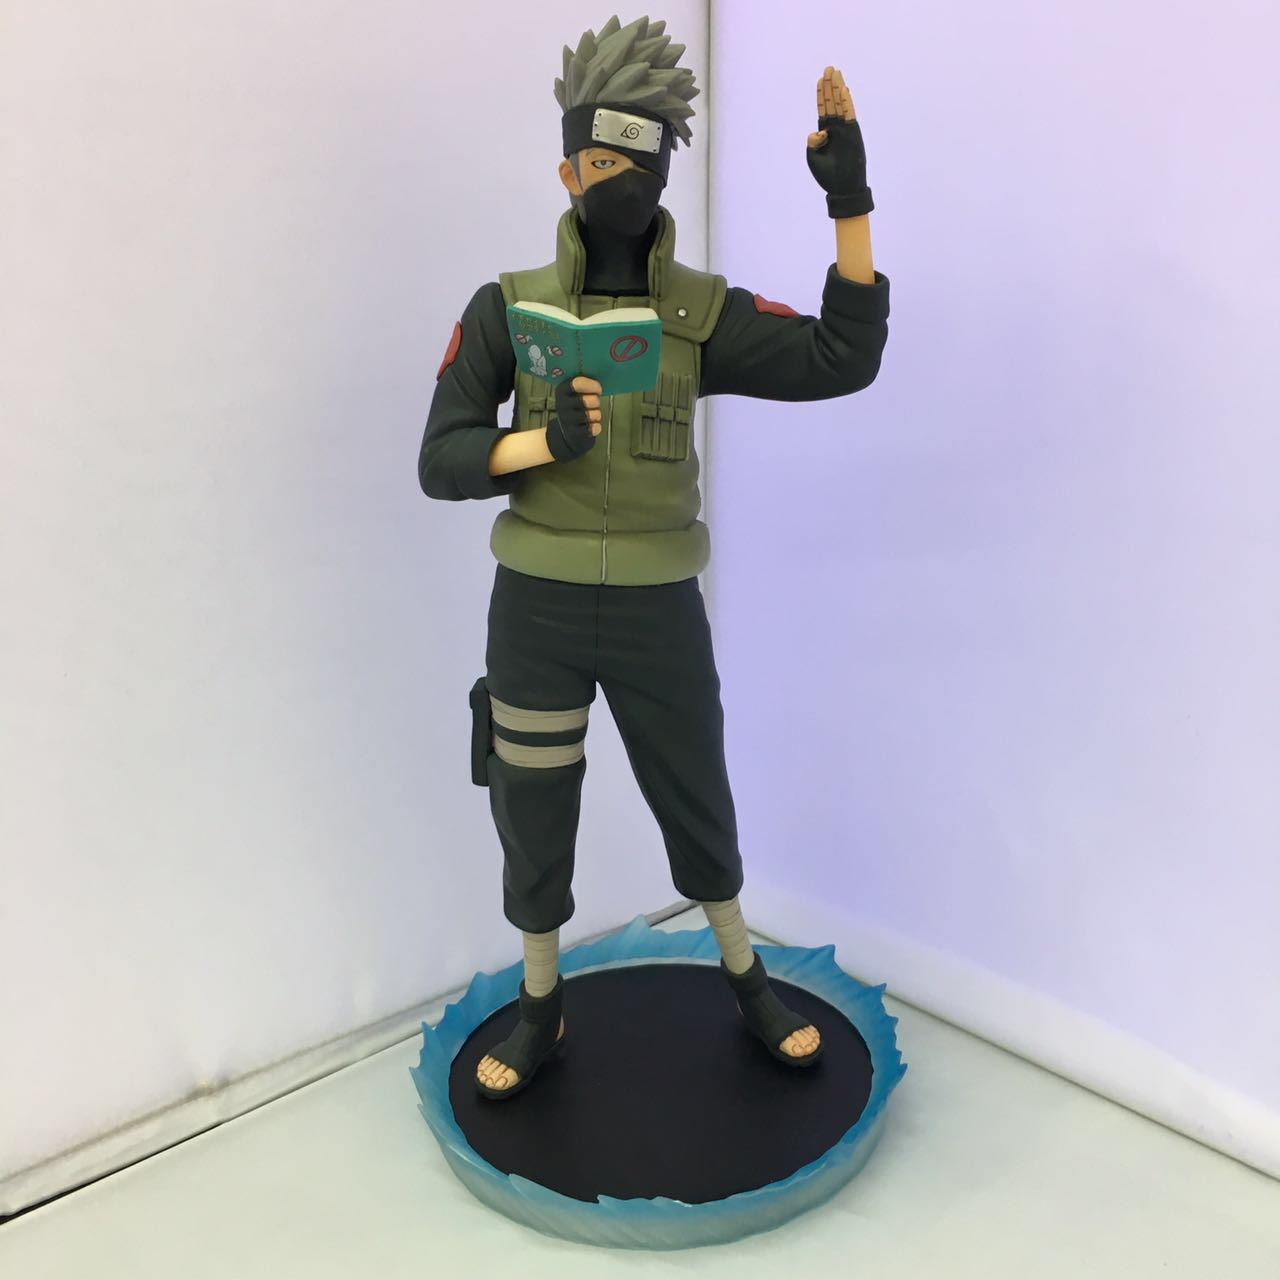 Naruto Kakashi Hatake Action Figure Sharingan Ver. Kakashi Doll PVC Action Figure Collectible Model Toy 30cm KT3510 new naruto shippuden orochimaru pvc action figure collectible model toy 13cm doll brinquedos juguetes hot sale freeshipping